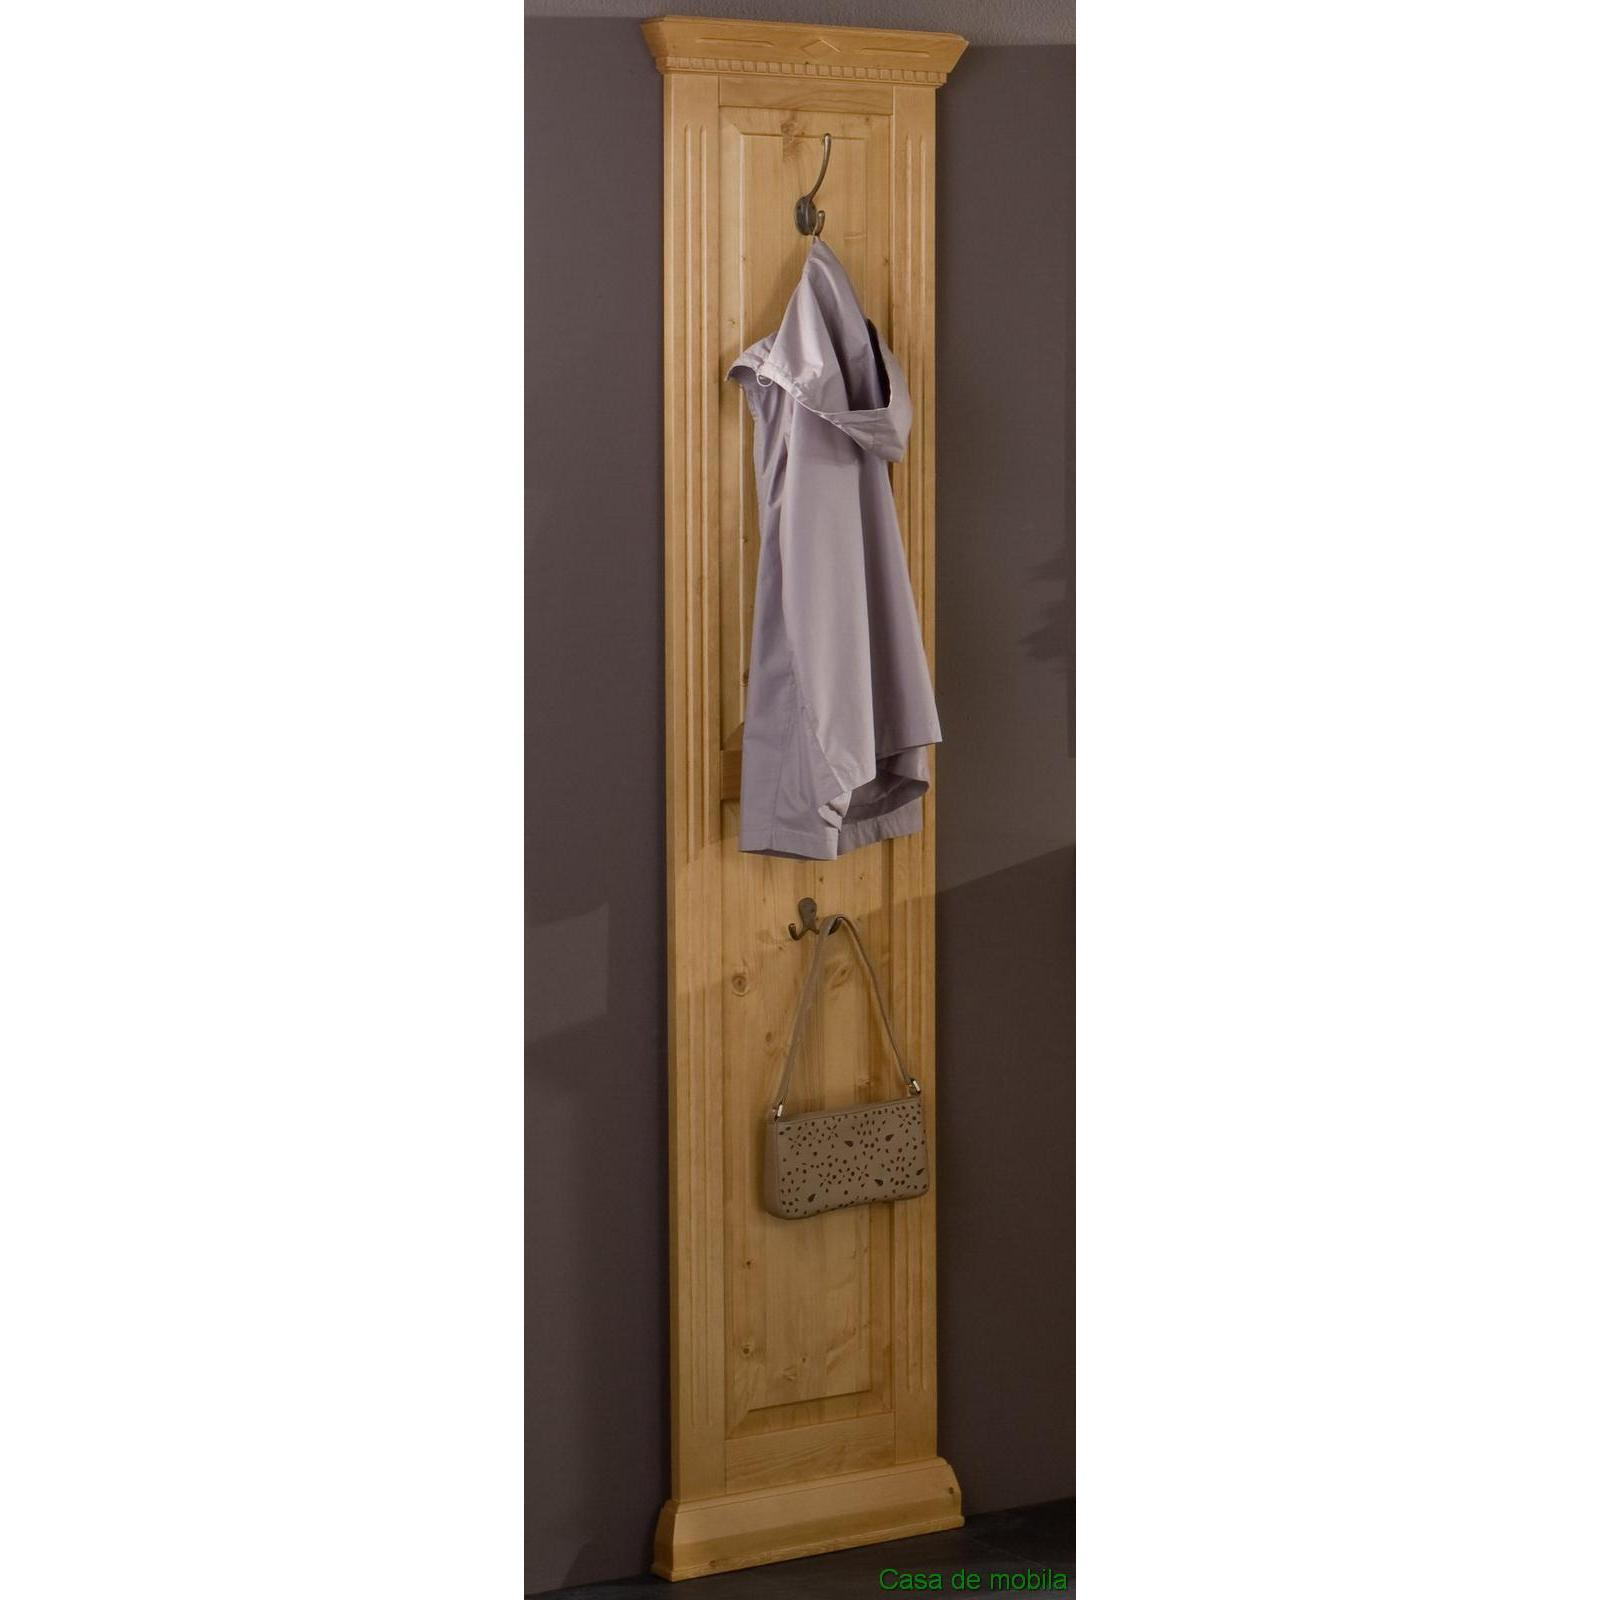 massivholz garderoben set flur garderobe flurm bel dielenm bel holz massiv antik ebay. Black Bedroom Furniture Sets. Home Design Ideas